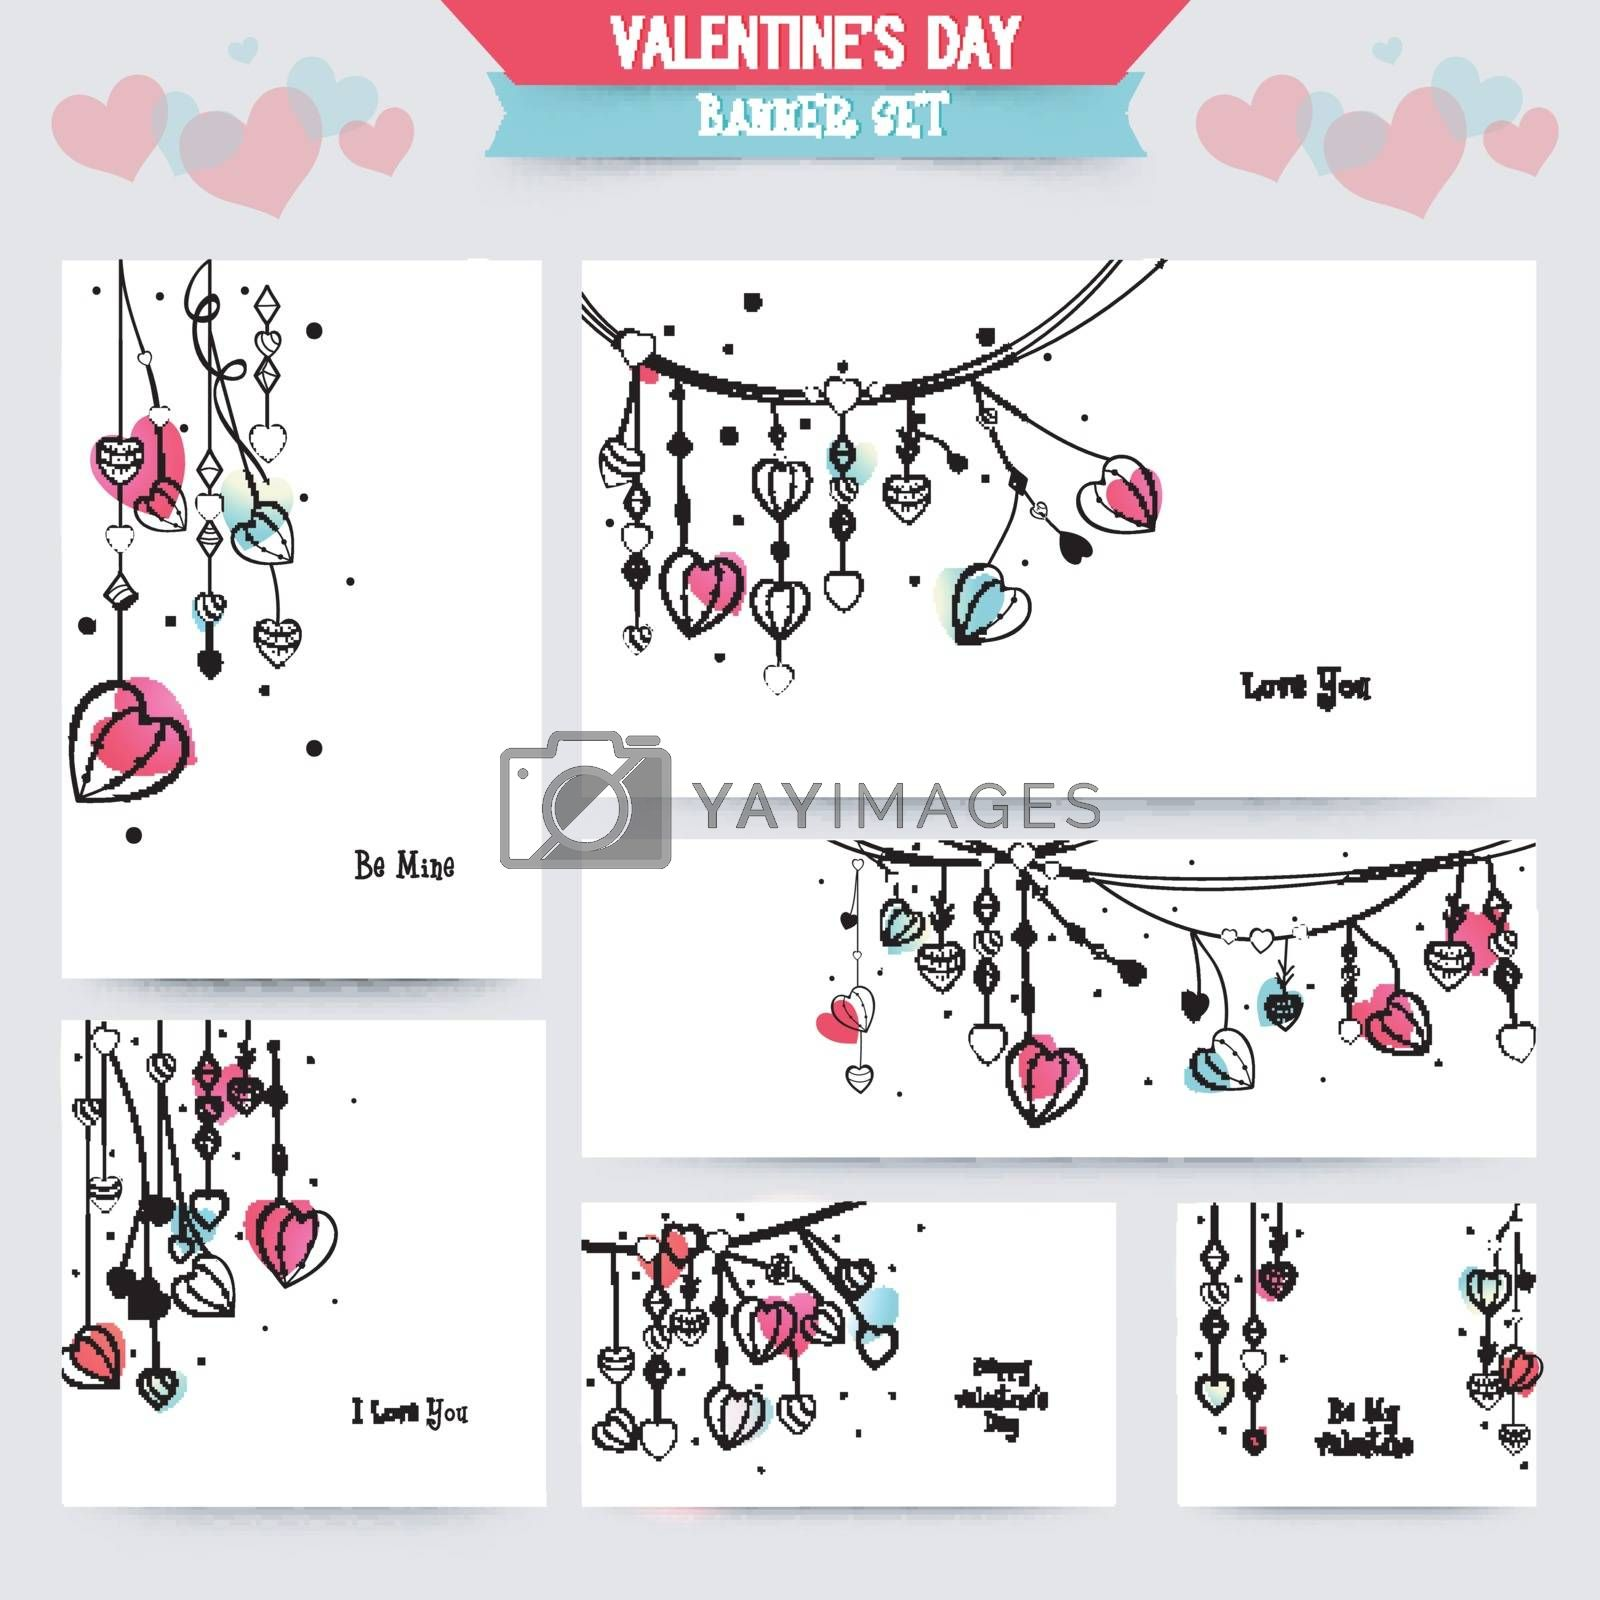 Collection of beautiful banners, cards or invitation with Hearts decoration for Happy Valentine's Day Celebration.